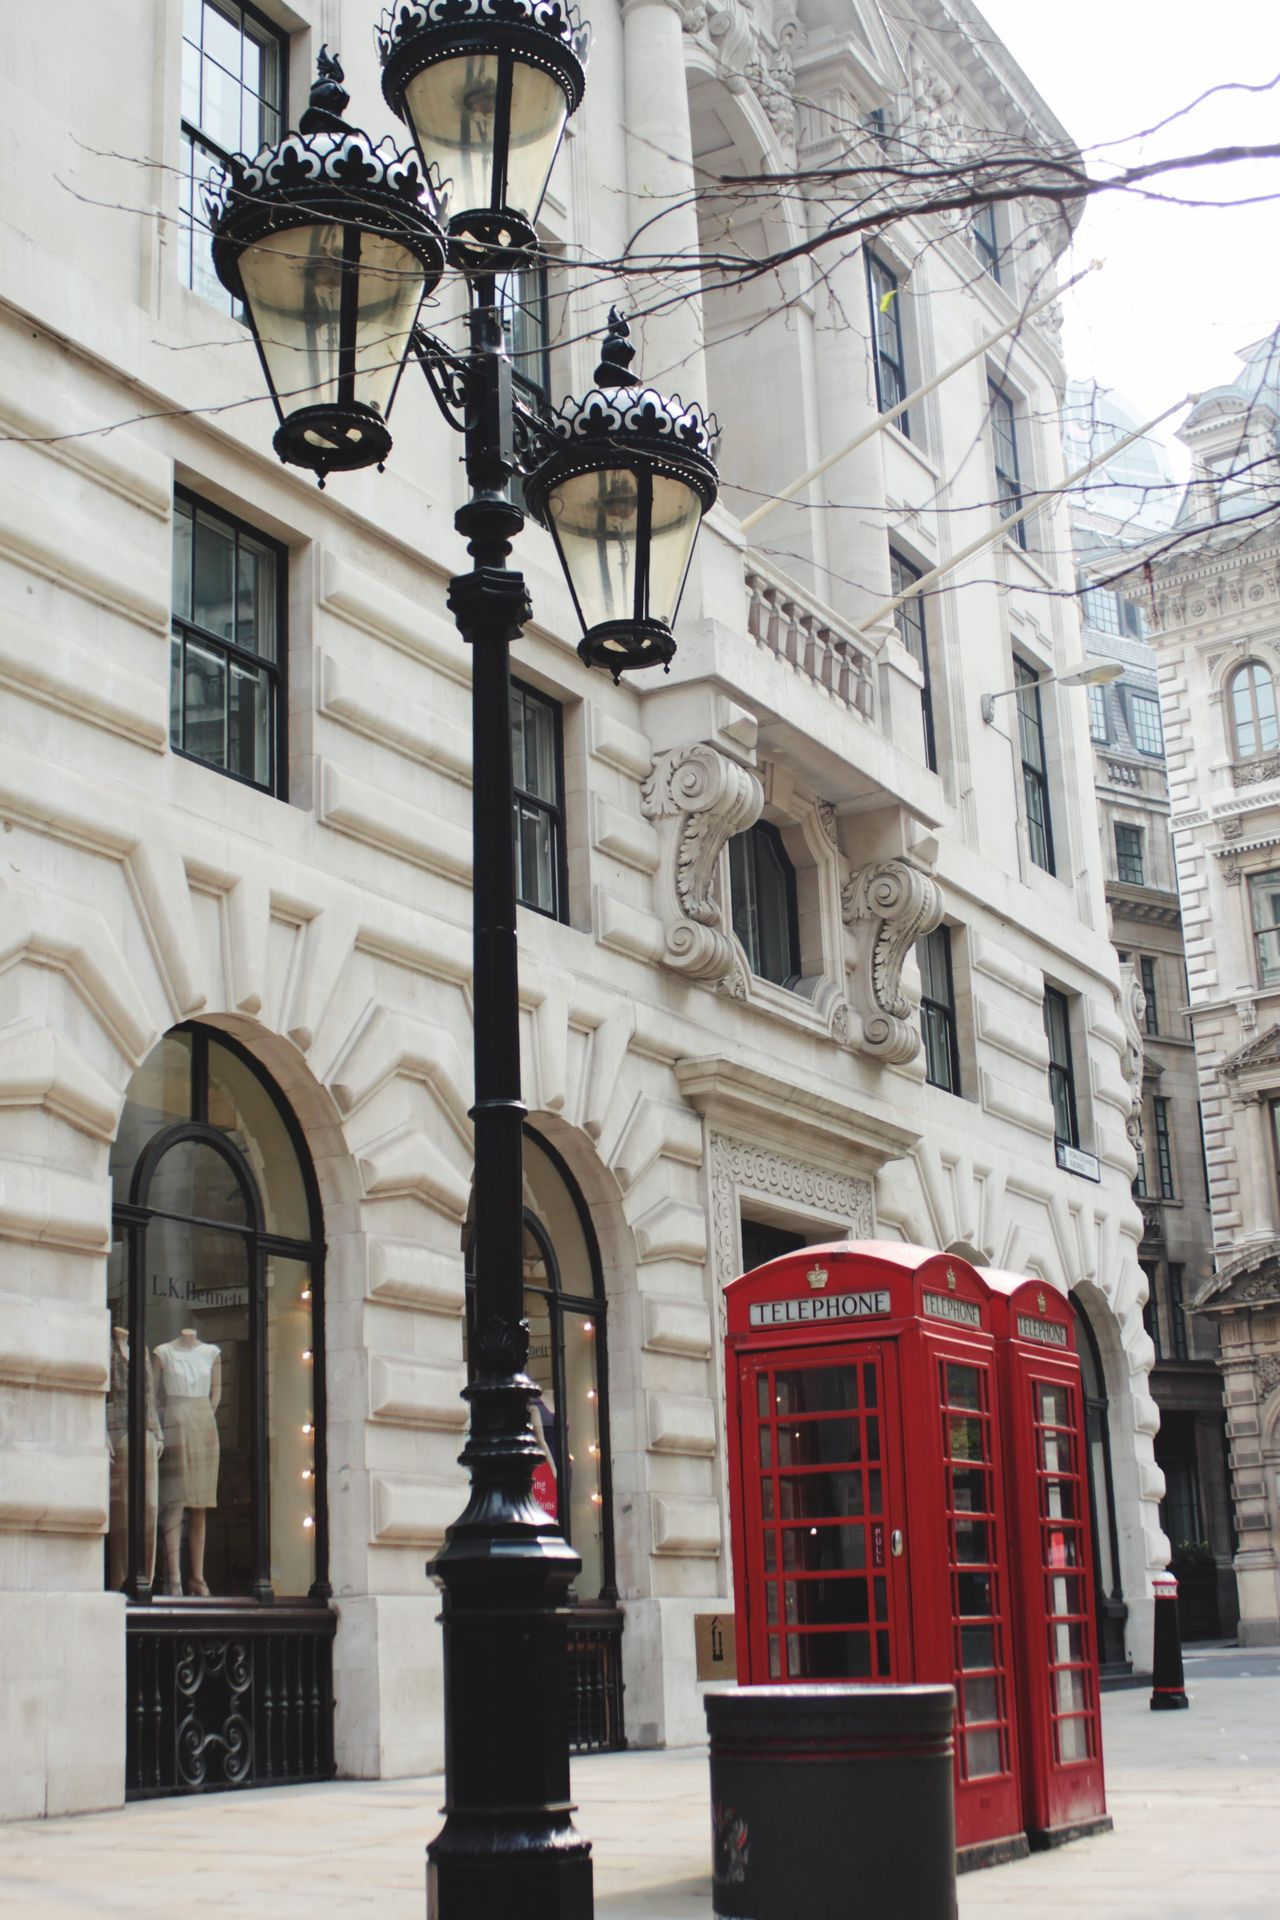 Building Exterior Architecture Outdoors London Red Phone Boxes Red Lamp Black And White With A Splash Of Colour Streetphoto_color City Outdoor Photography From Where I Stand Built Structure Buildings Welcome To Black City Of London Red Phone Box London Streets